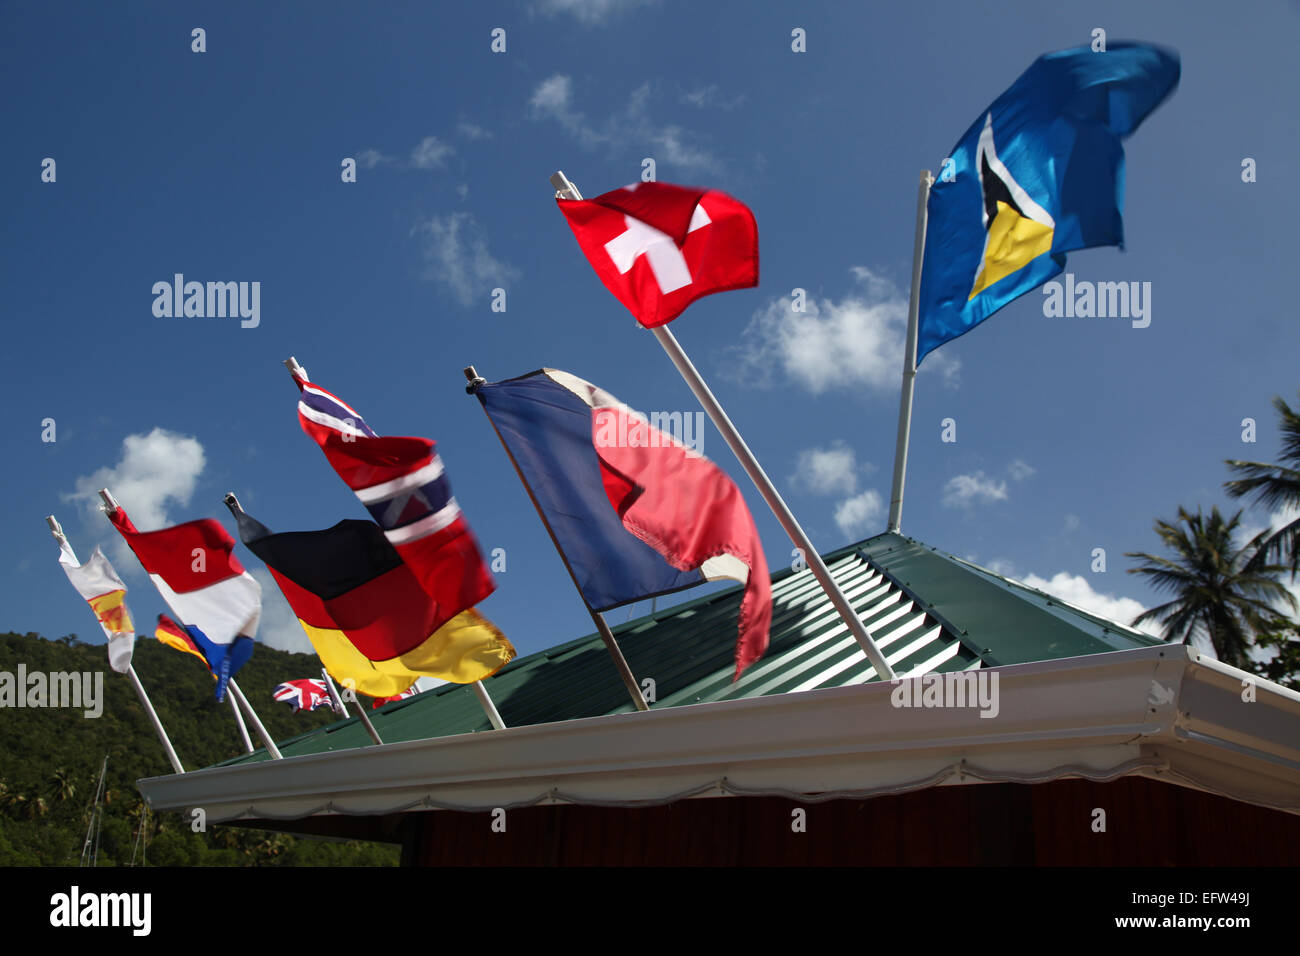 A sample of the flags around the world represented on the roof of a Bar in Marigot bay, St. Lucia - Stock Image